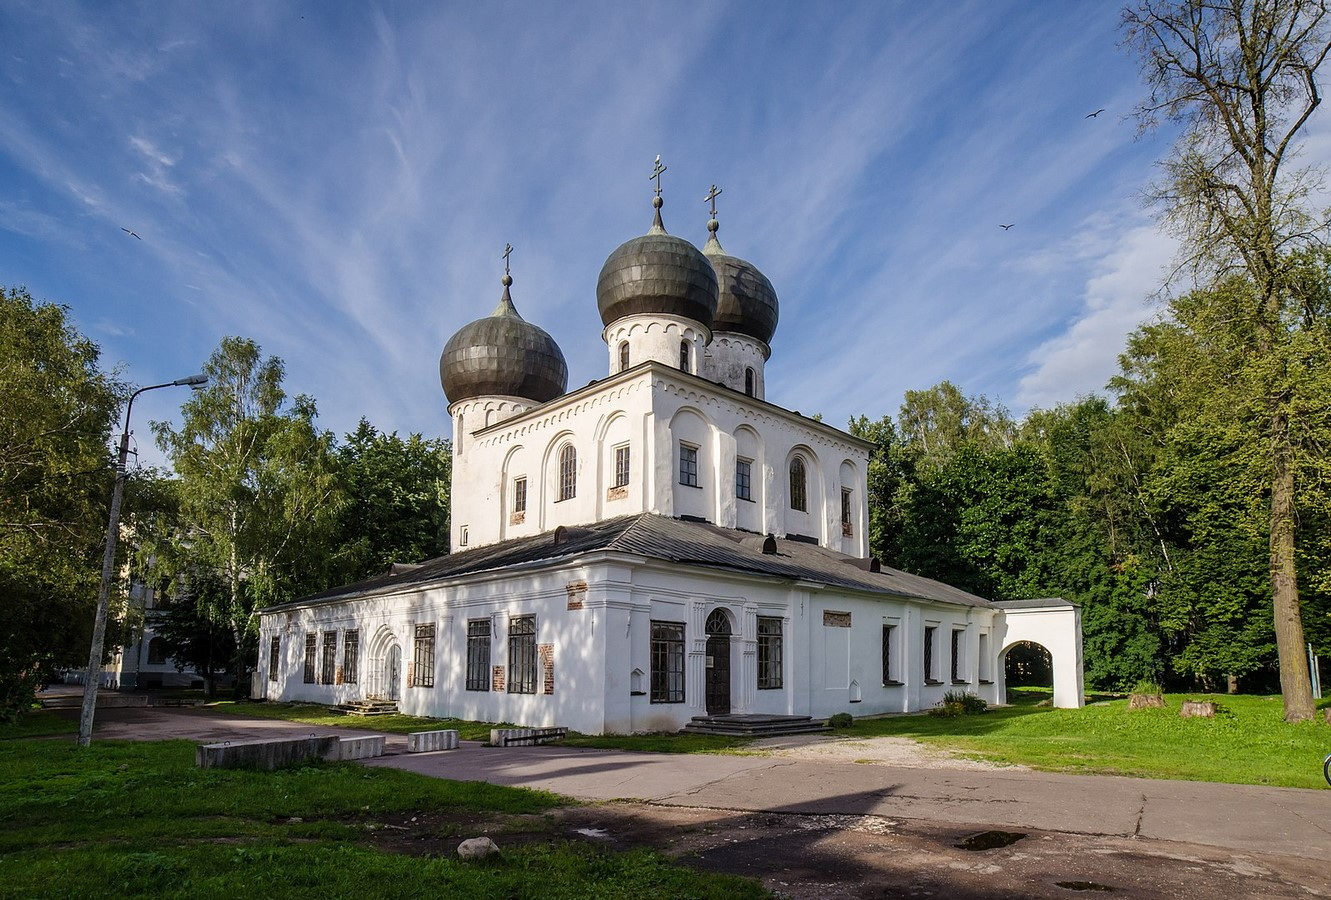 15 Kievan Rus Christian structures every Architect must visit - Sheet14